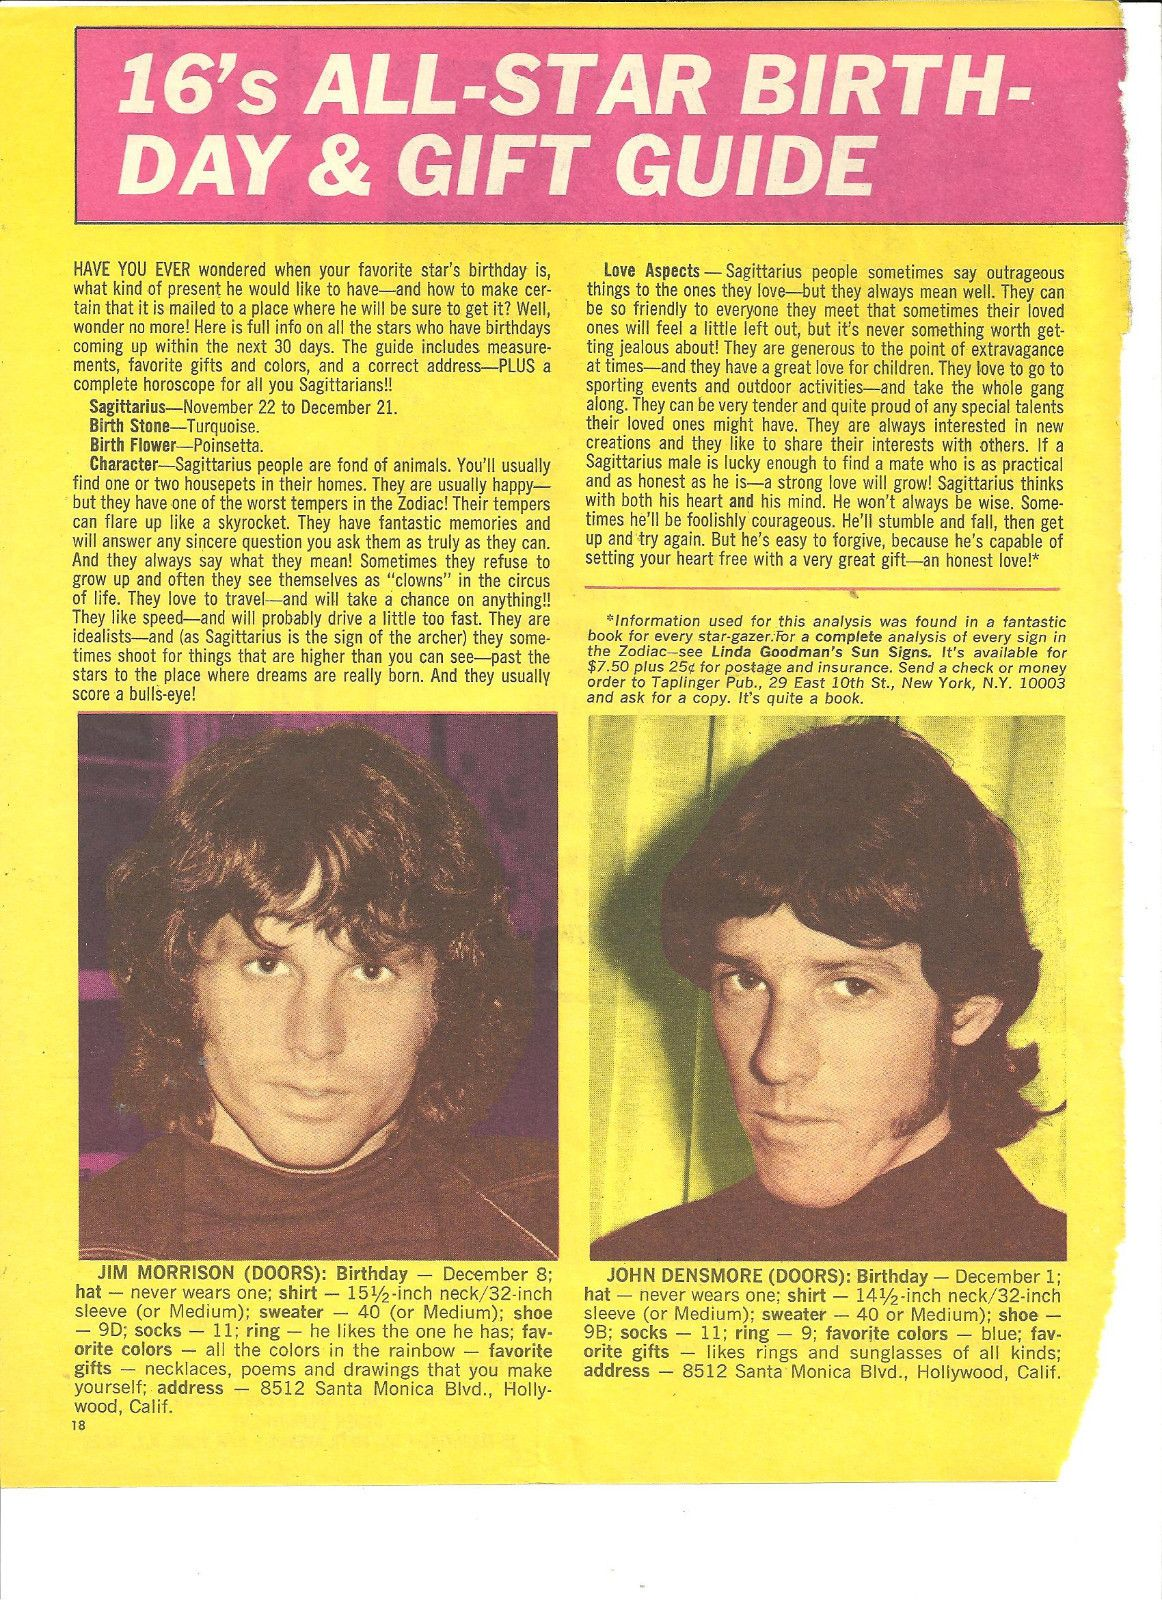 Jim Morrison The Doors Full Page Vintage Clipping   eBay